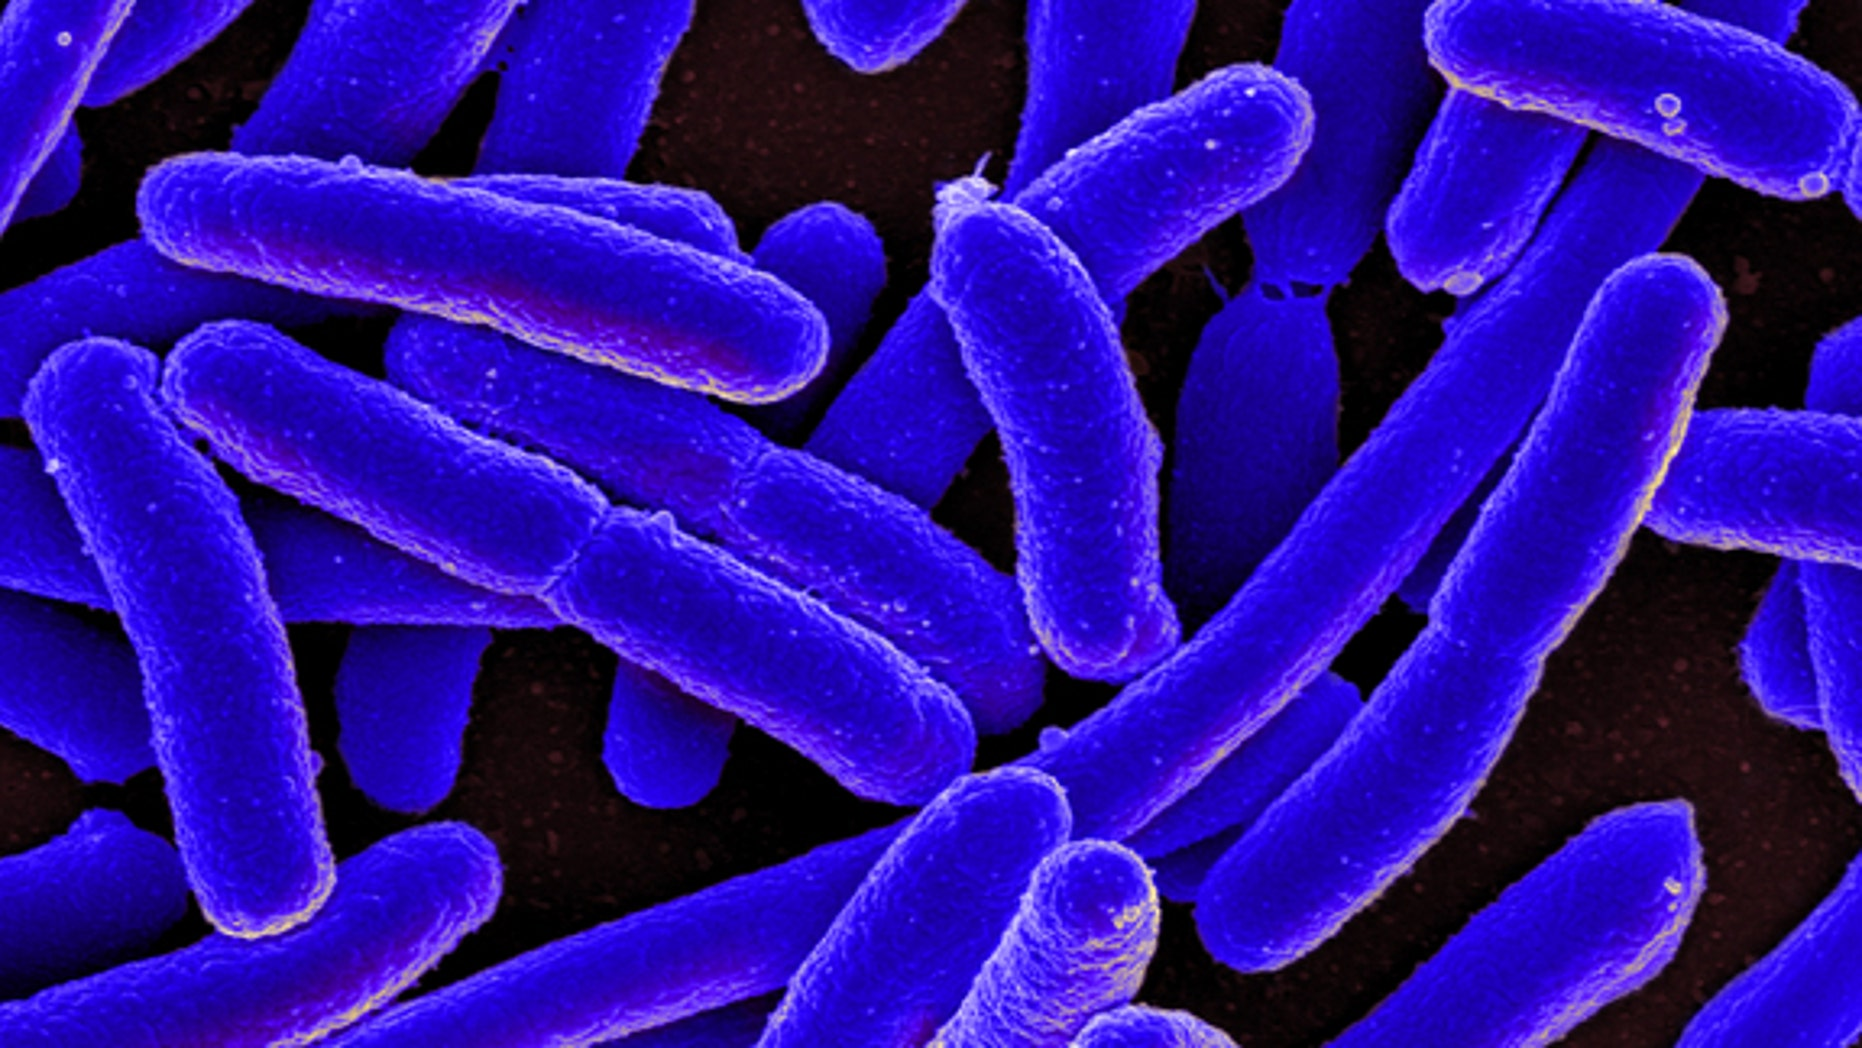 Colorized scanning electron micrograph of Escherichia coli bacteria, grown in culture and adhered to a cover slip.